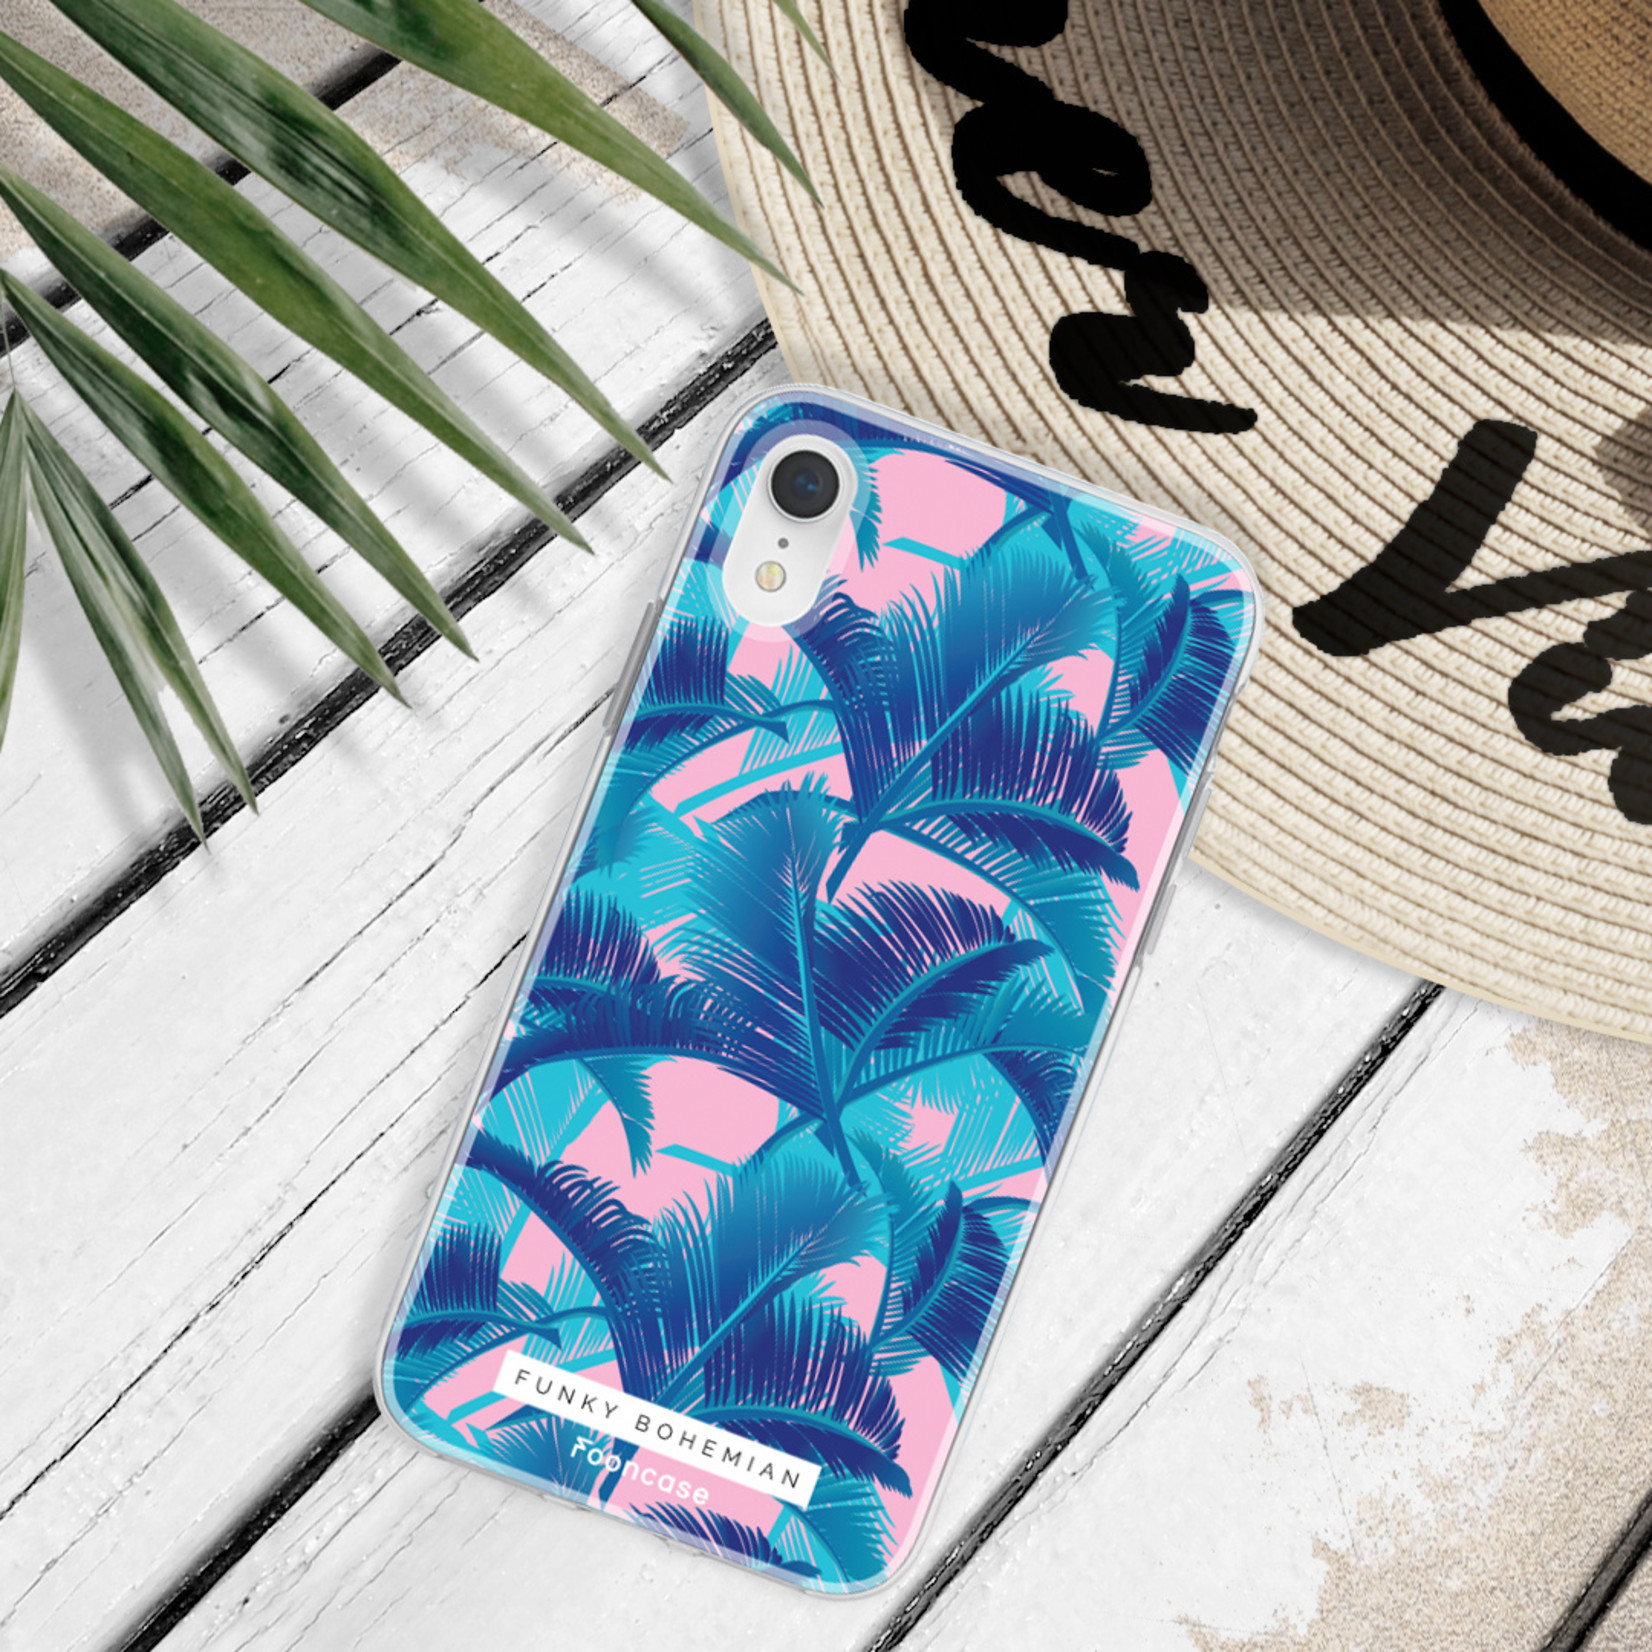 FOONCASE iPhone XS Max hoesje TPU Soft Case - Back Cover - Funky Bohemian / Blauw Roze Bladeren